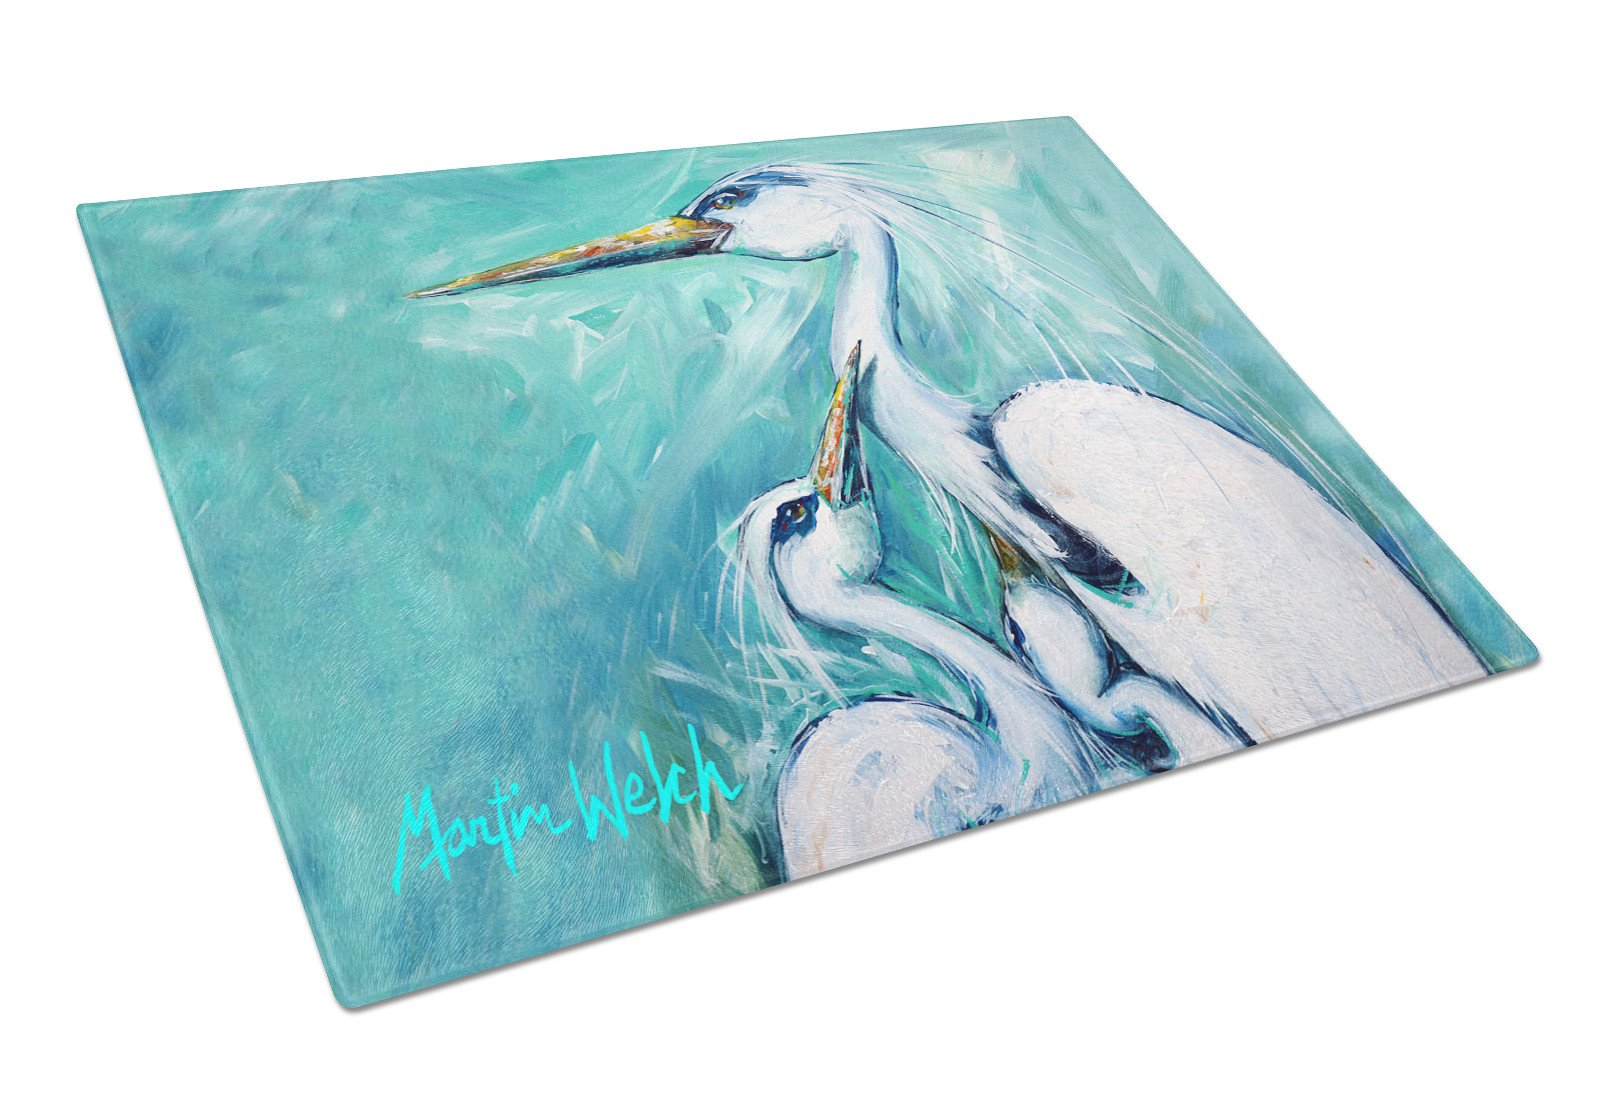 Mother's Love White Crane Glass Cutting Board Large Size MW1159LCB by Caroline's Treasures